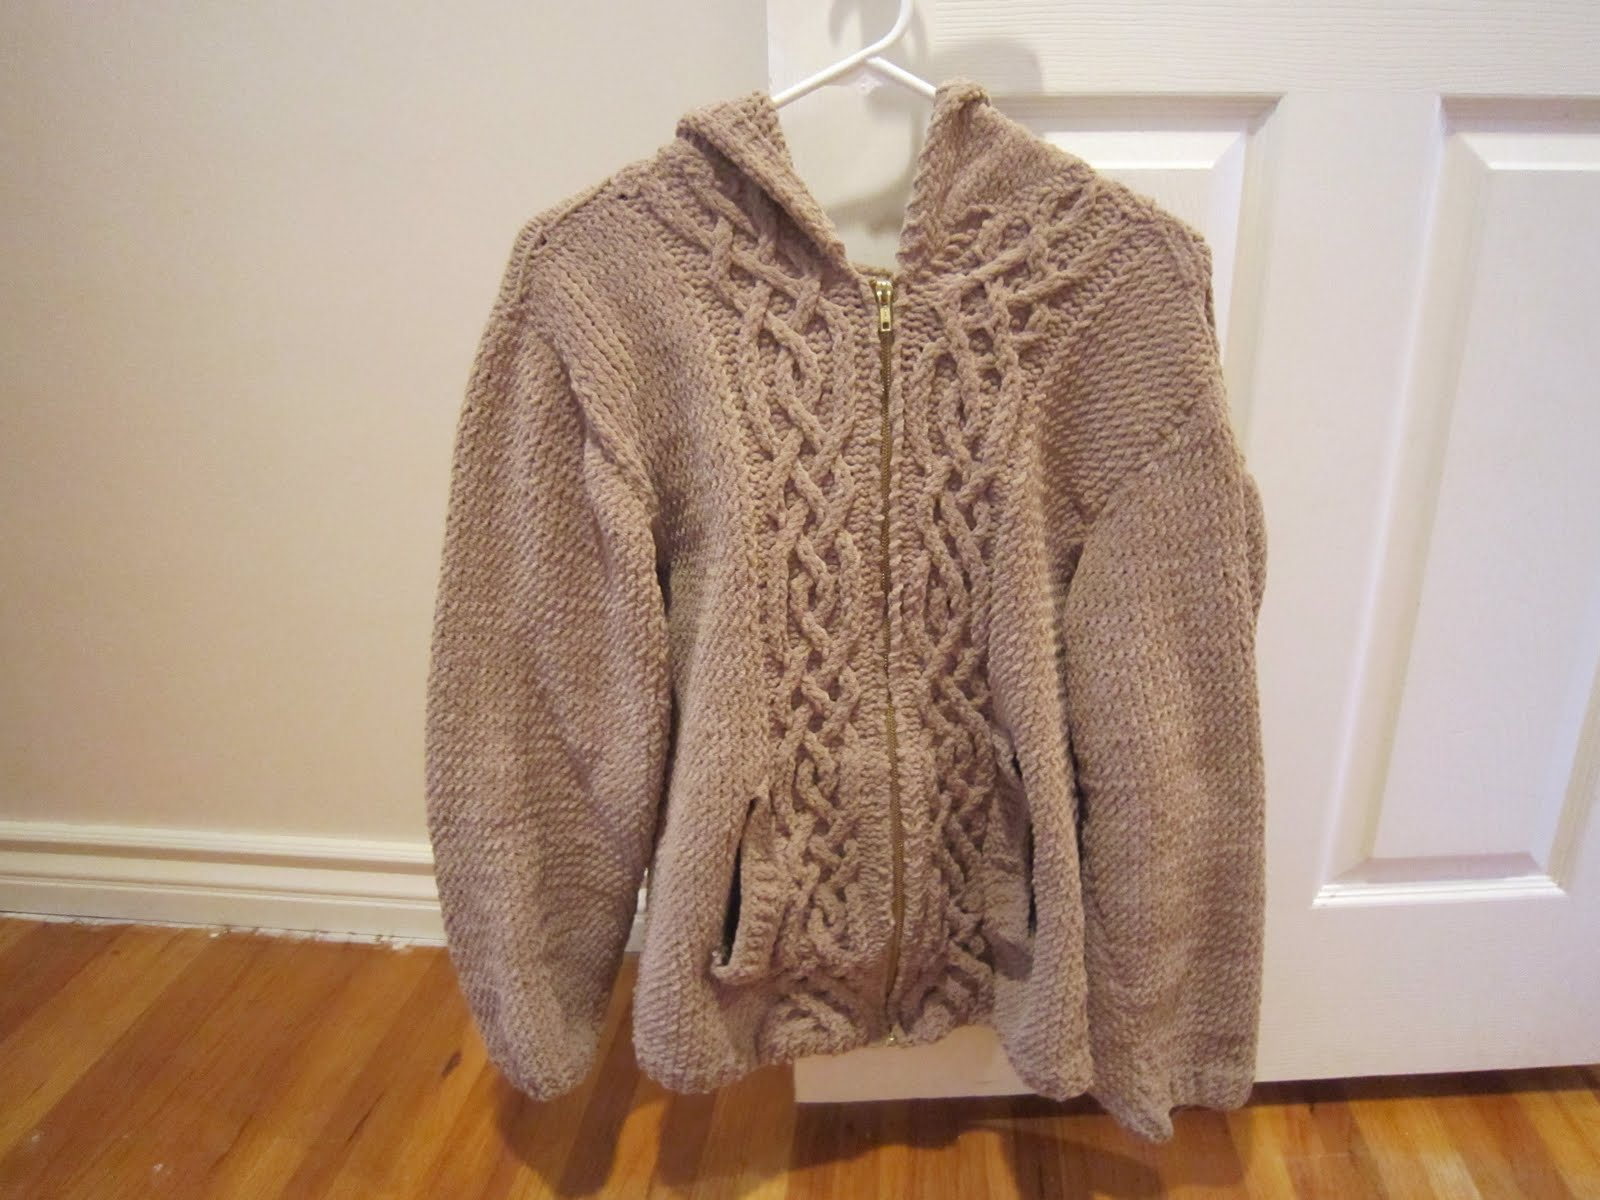 Knitted Jacket Pattern : In My Pajamas: Knitted Jacket with Celtic Cable Pattern